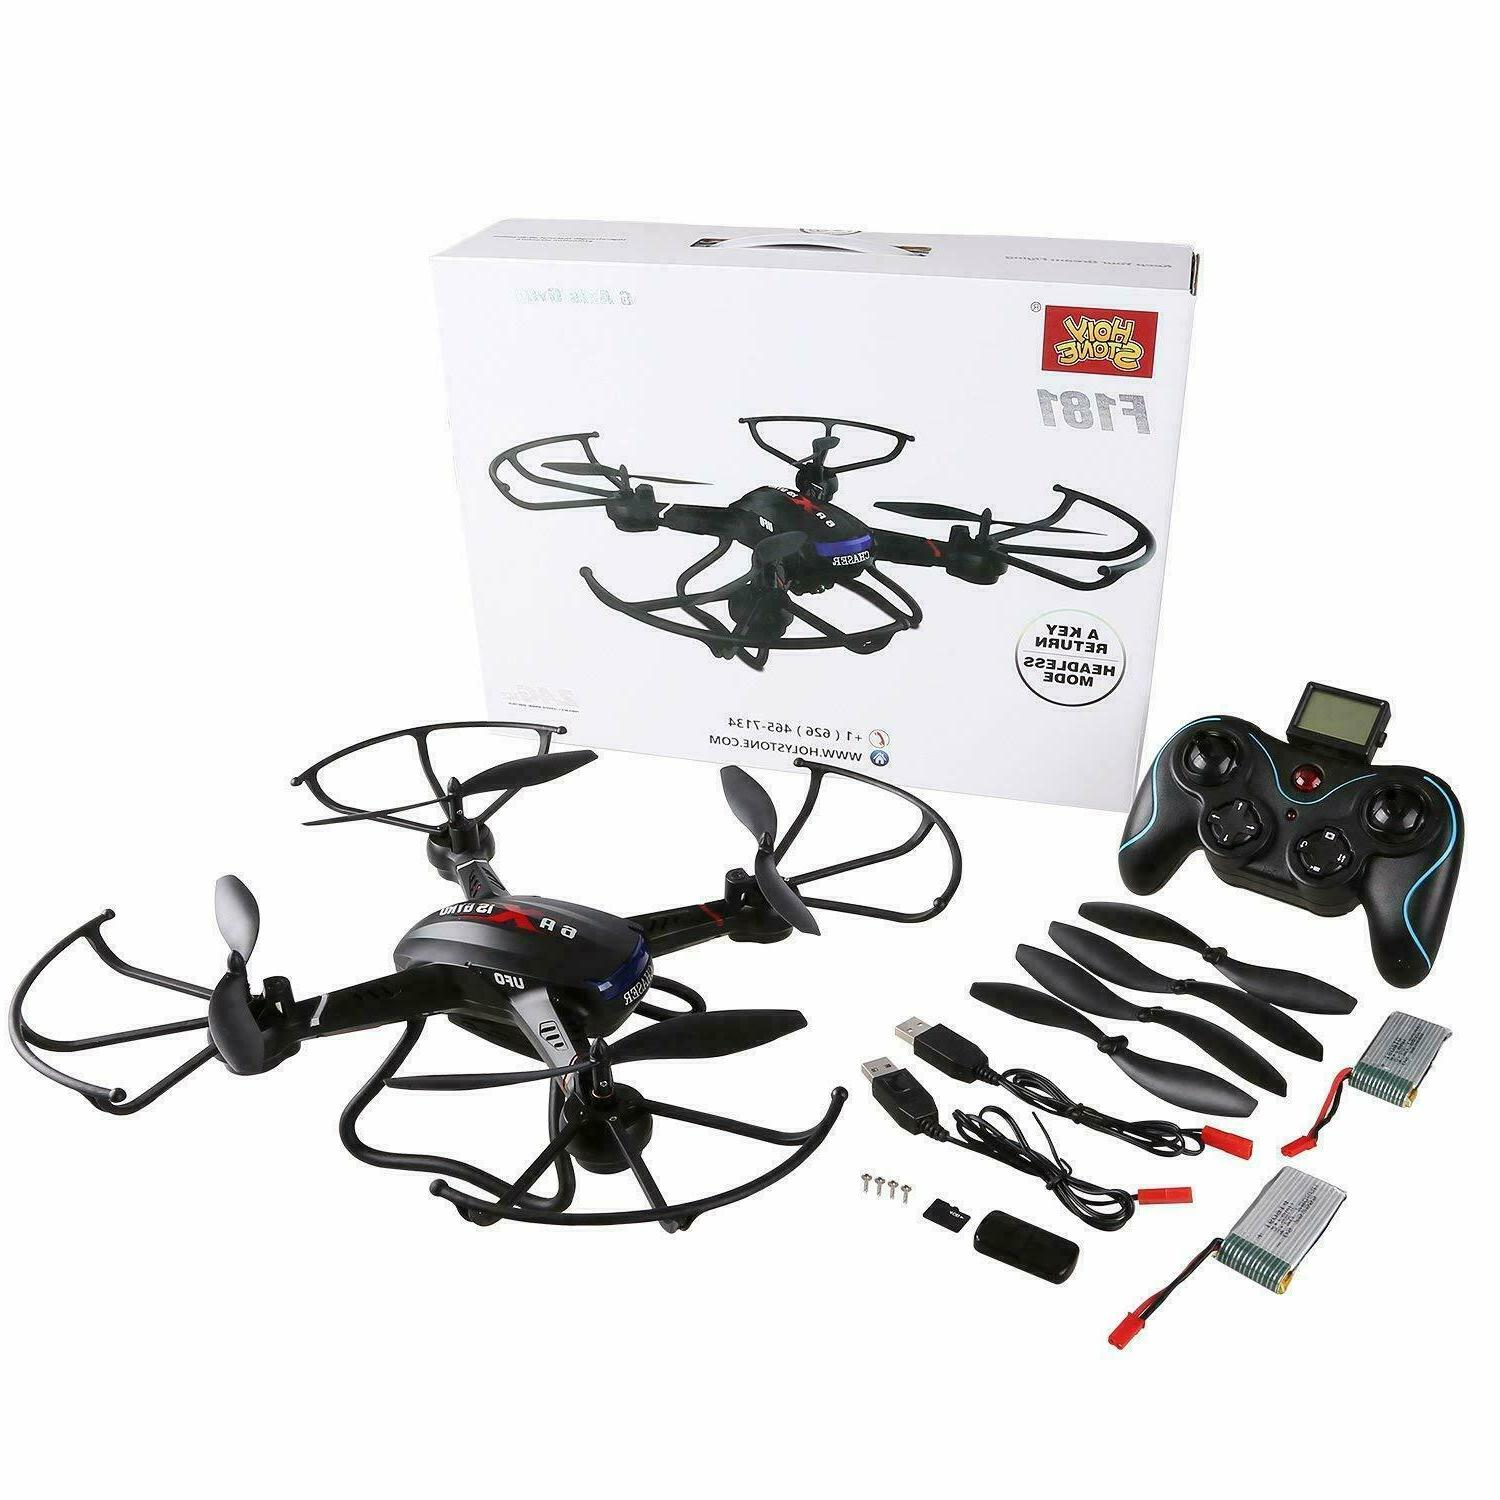 rc quadcopter drone f181c with hd camera